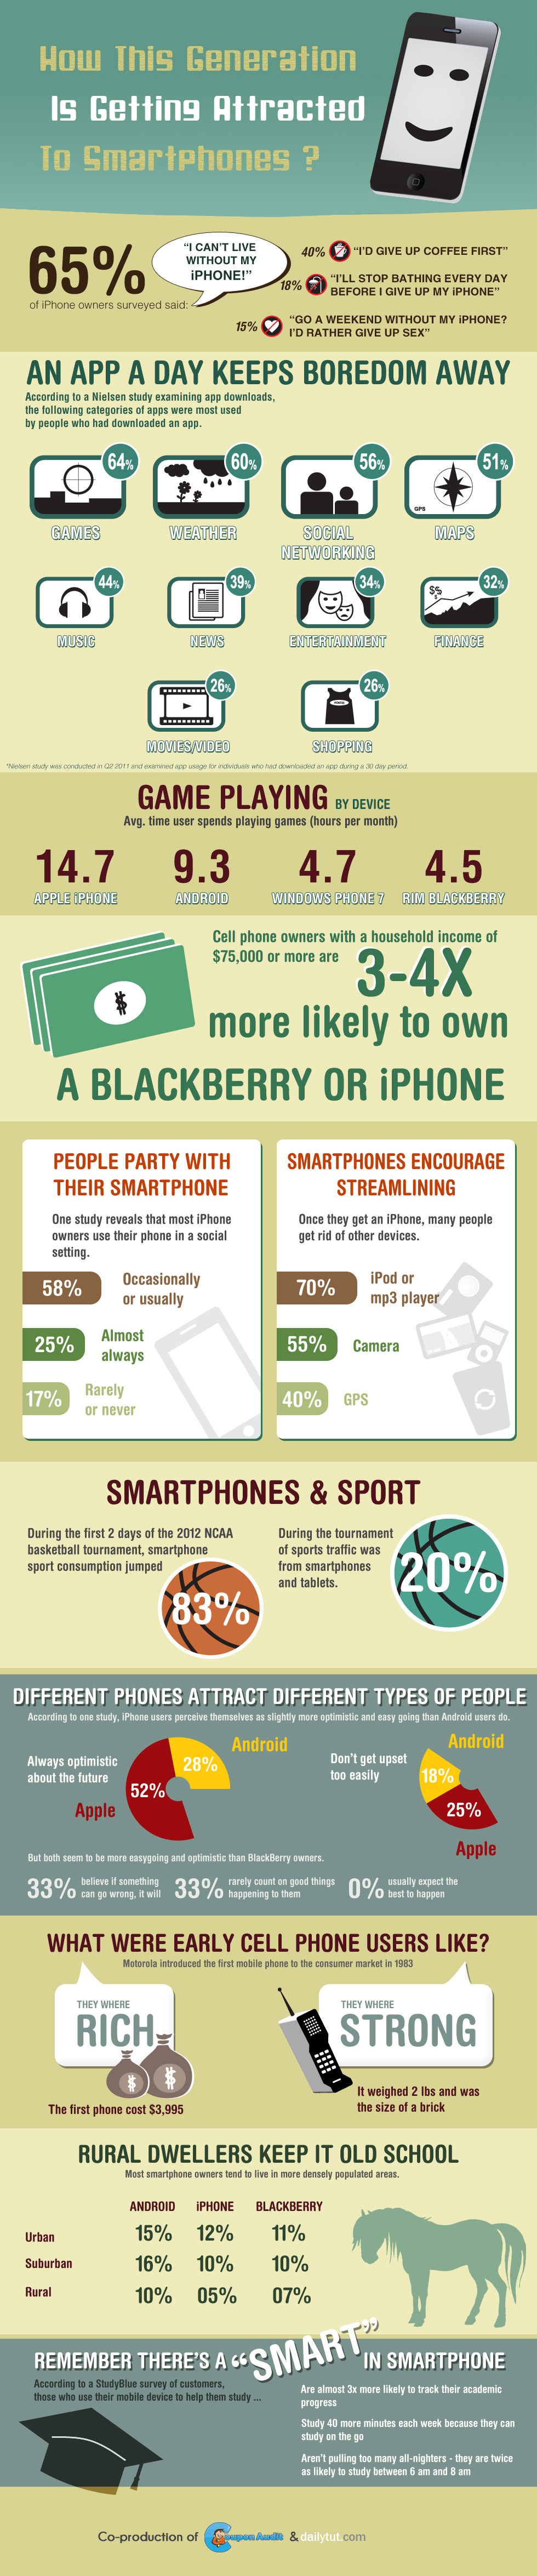 How-This-Generation-Is-Getting-Attracted-To-Smartphones